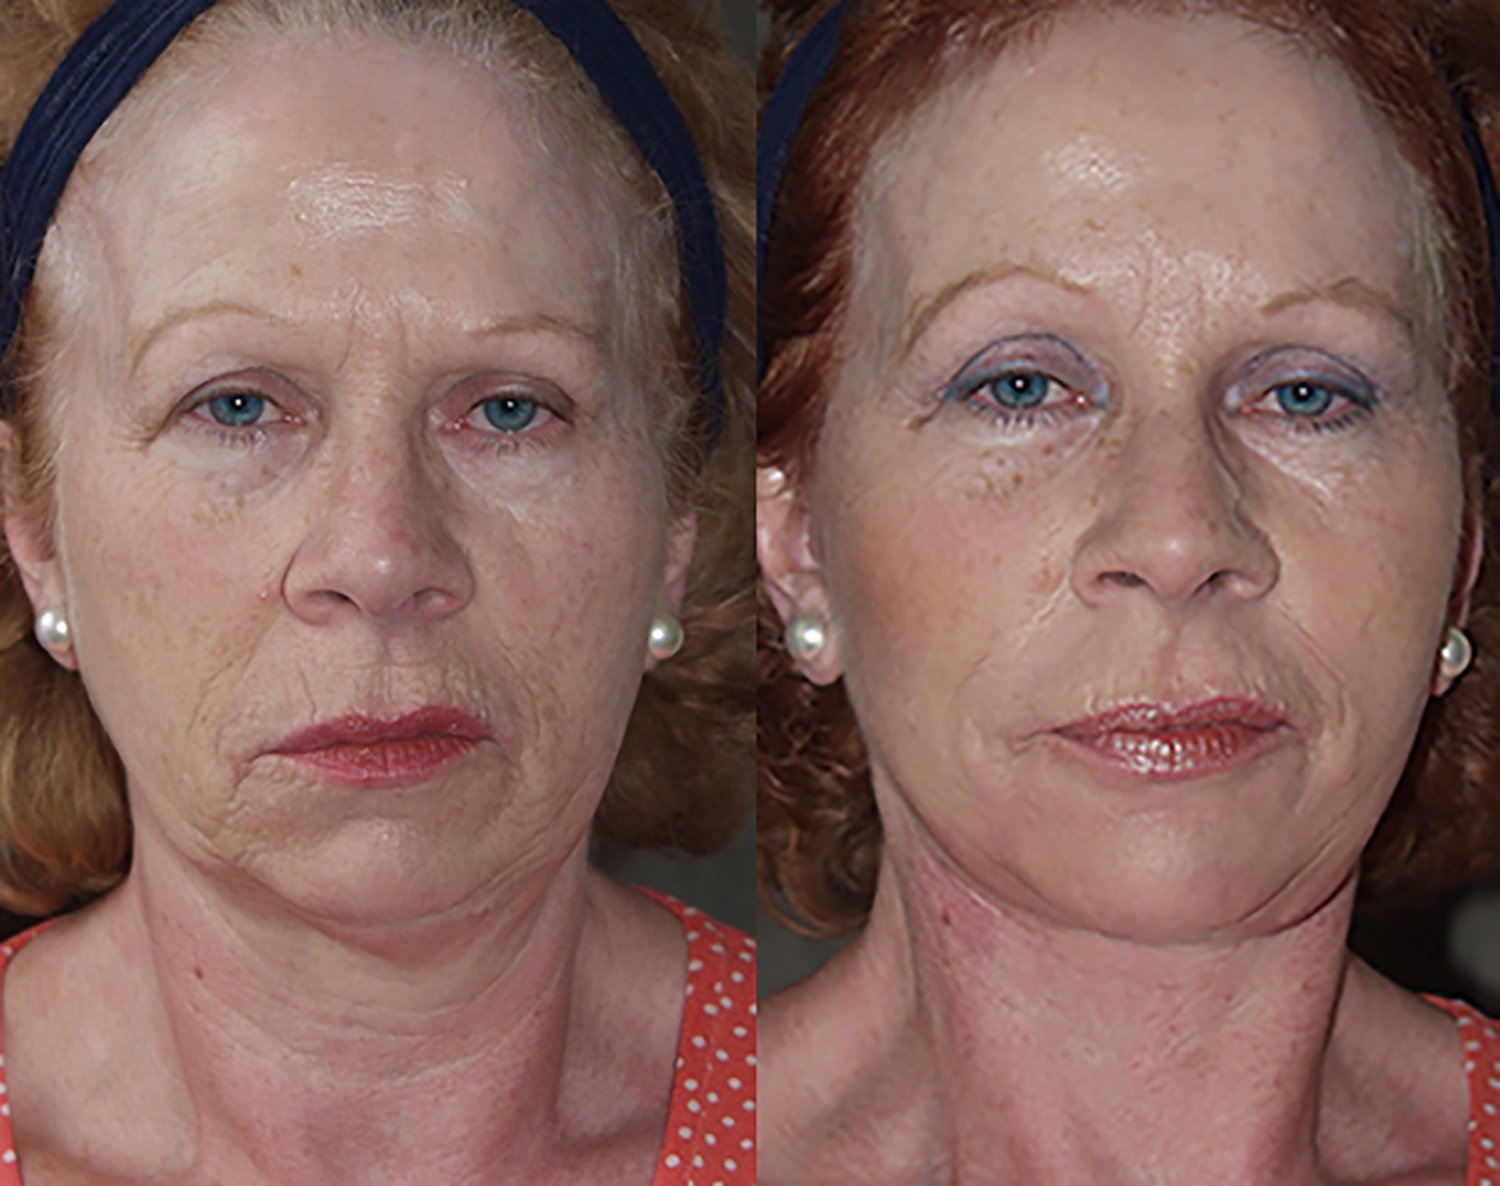 57-year-old facelift browlift upper & lower eyelids chin implant 6 months